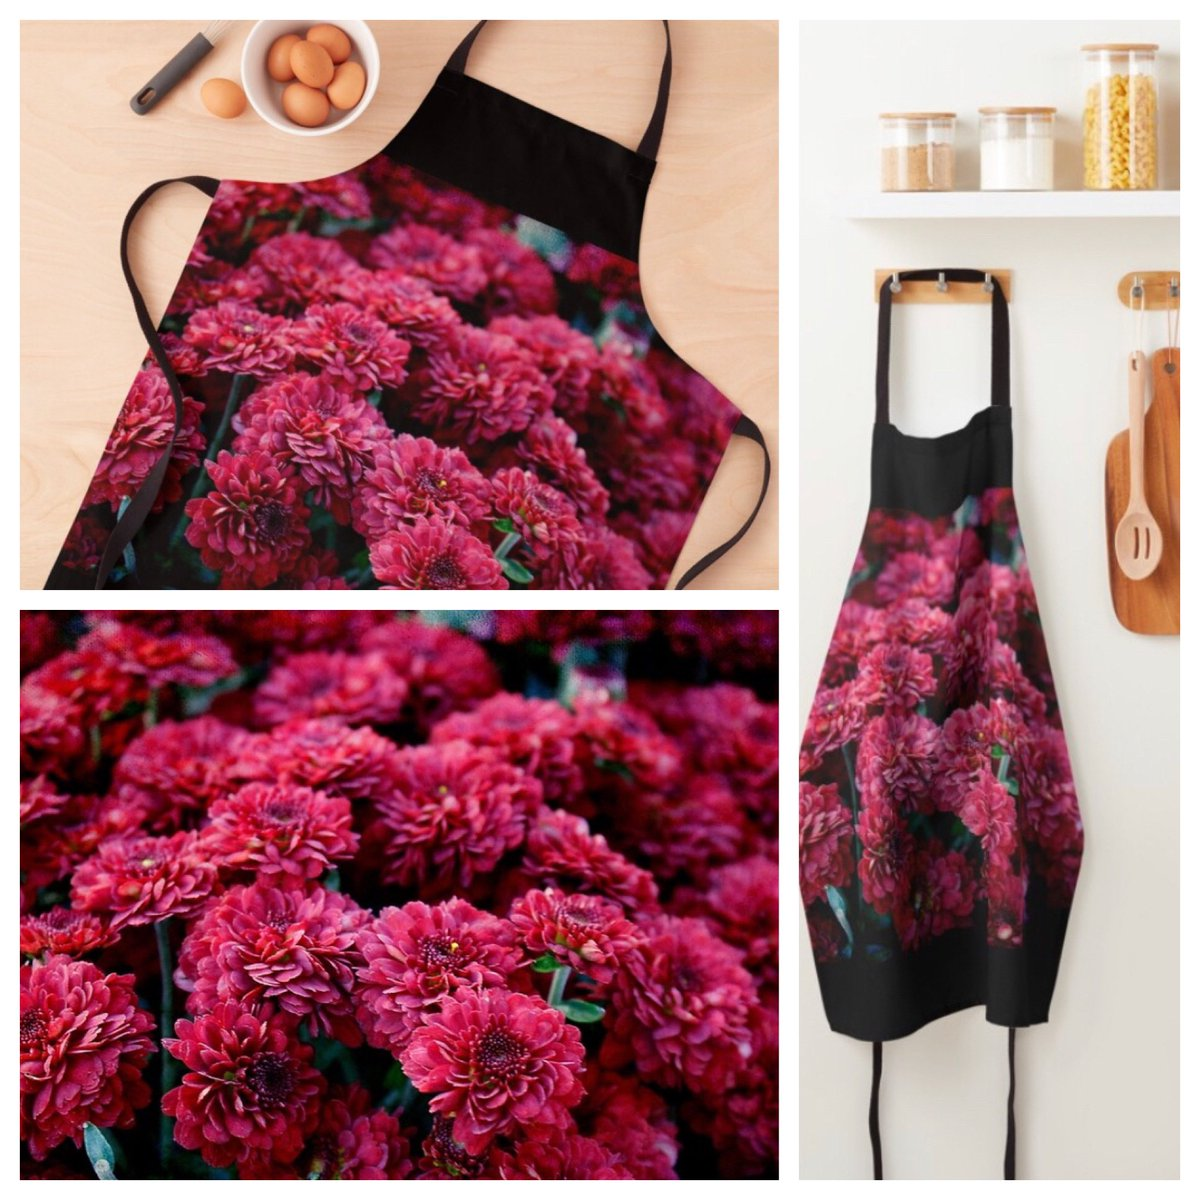 Thanksgiving gift ideas   https://t.co/nQyJbEoYj3  #thanksgiving #thanksgivinggifts #gifts #giftideas #fashion #floral #flowers #fall #autumn #fall2020 #autumn2020 #home #pillows #apparel #iphonecases https://t.co/aAdcBHlL26